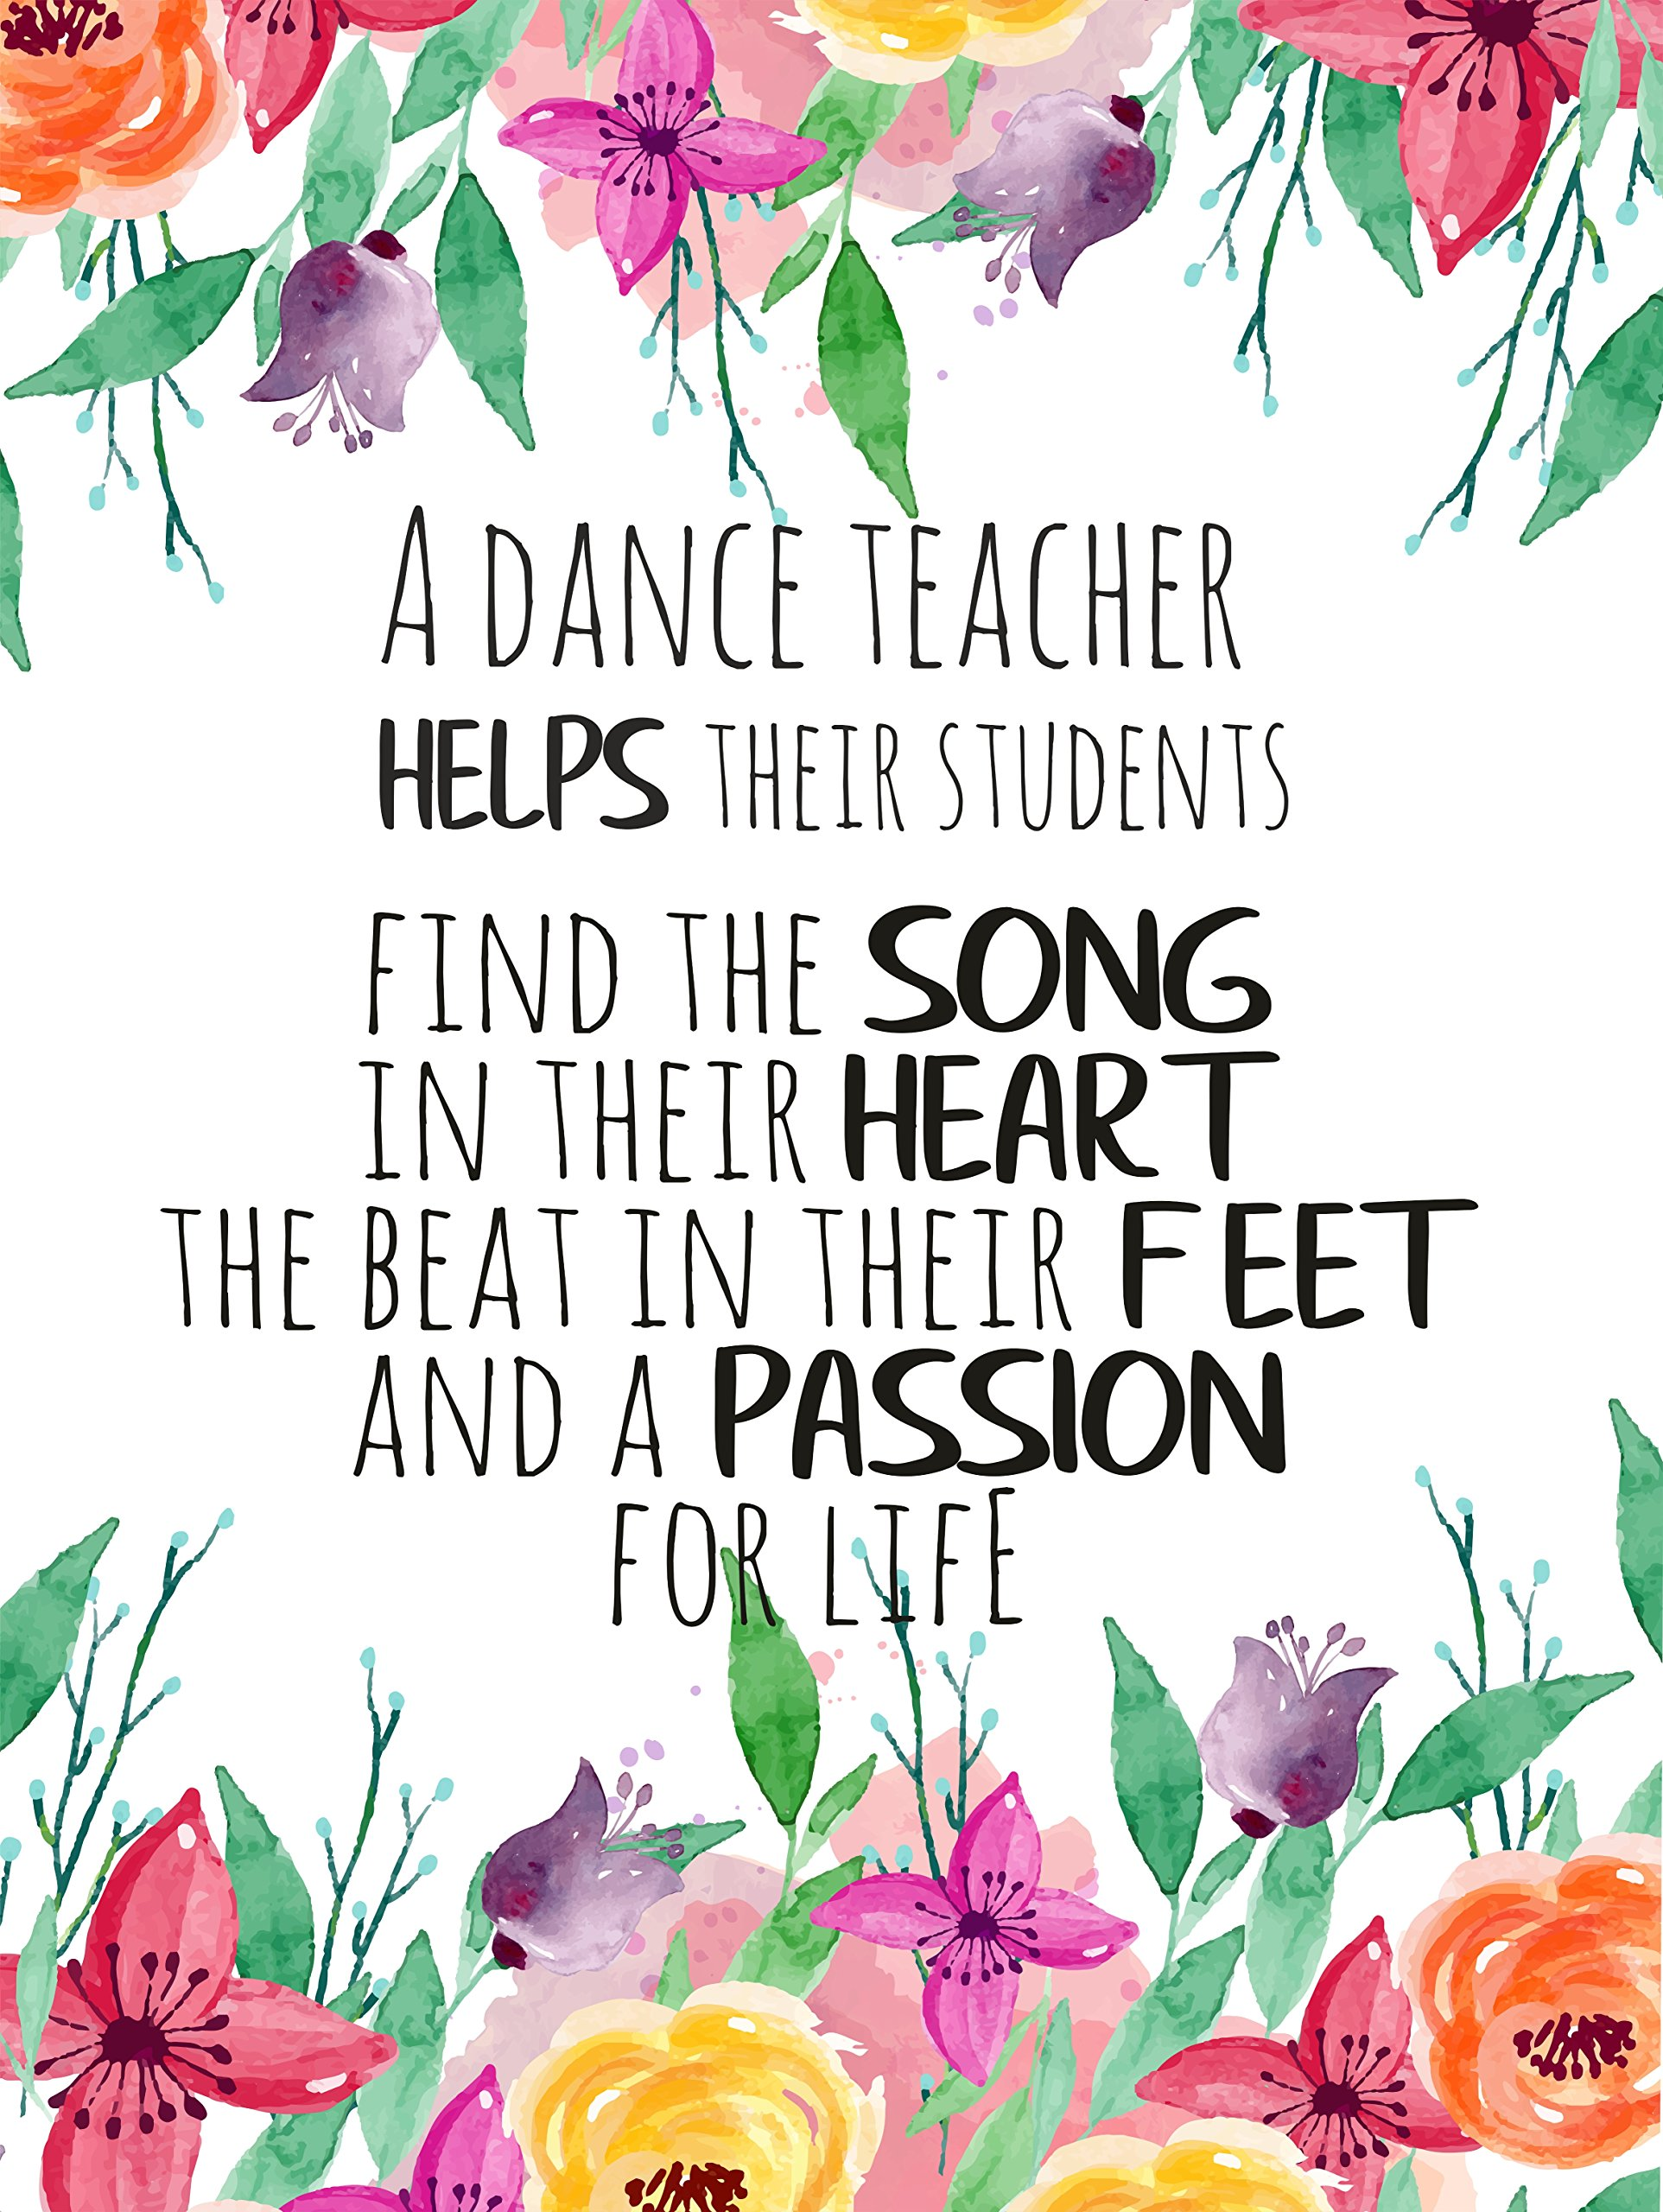 A dance teacher helps her students find the song in their heart Appreciation Gift Ballet Teacher Quotes Wall Art Thank you Card Floral print UNFRAMED POSTER A3